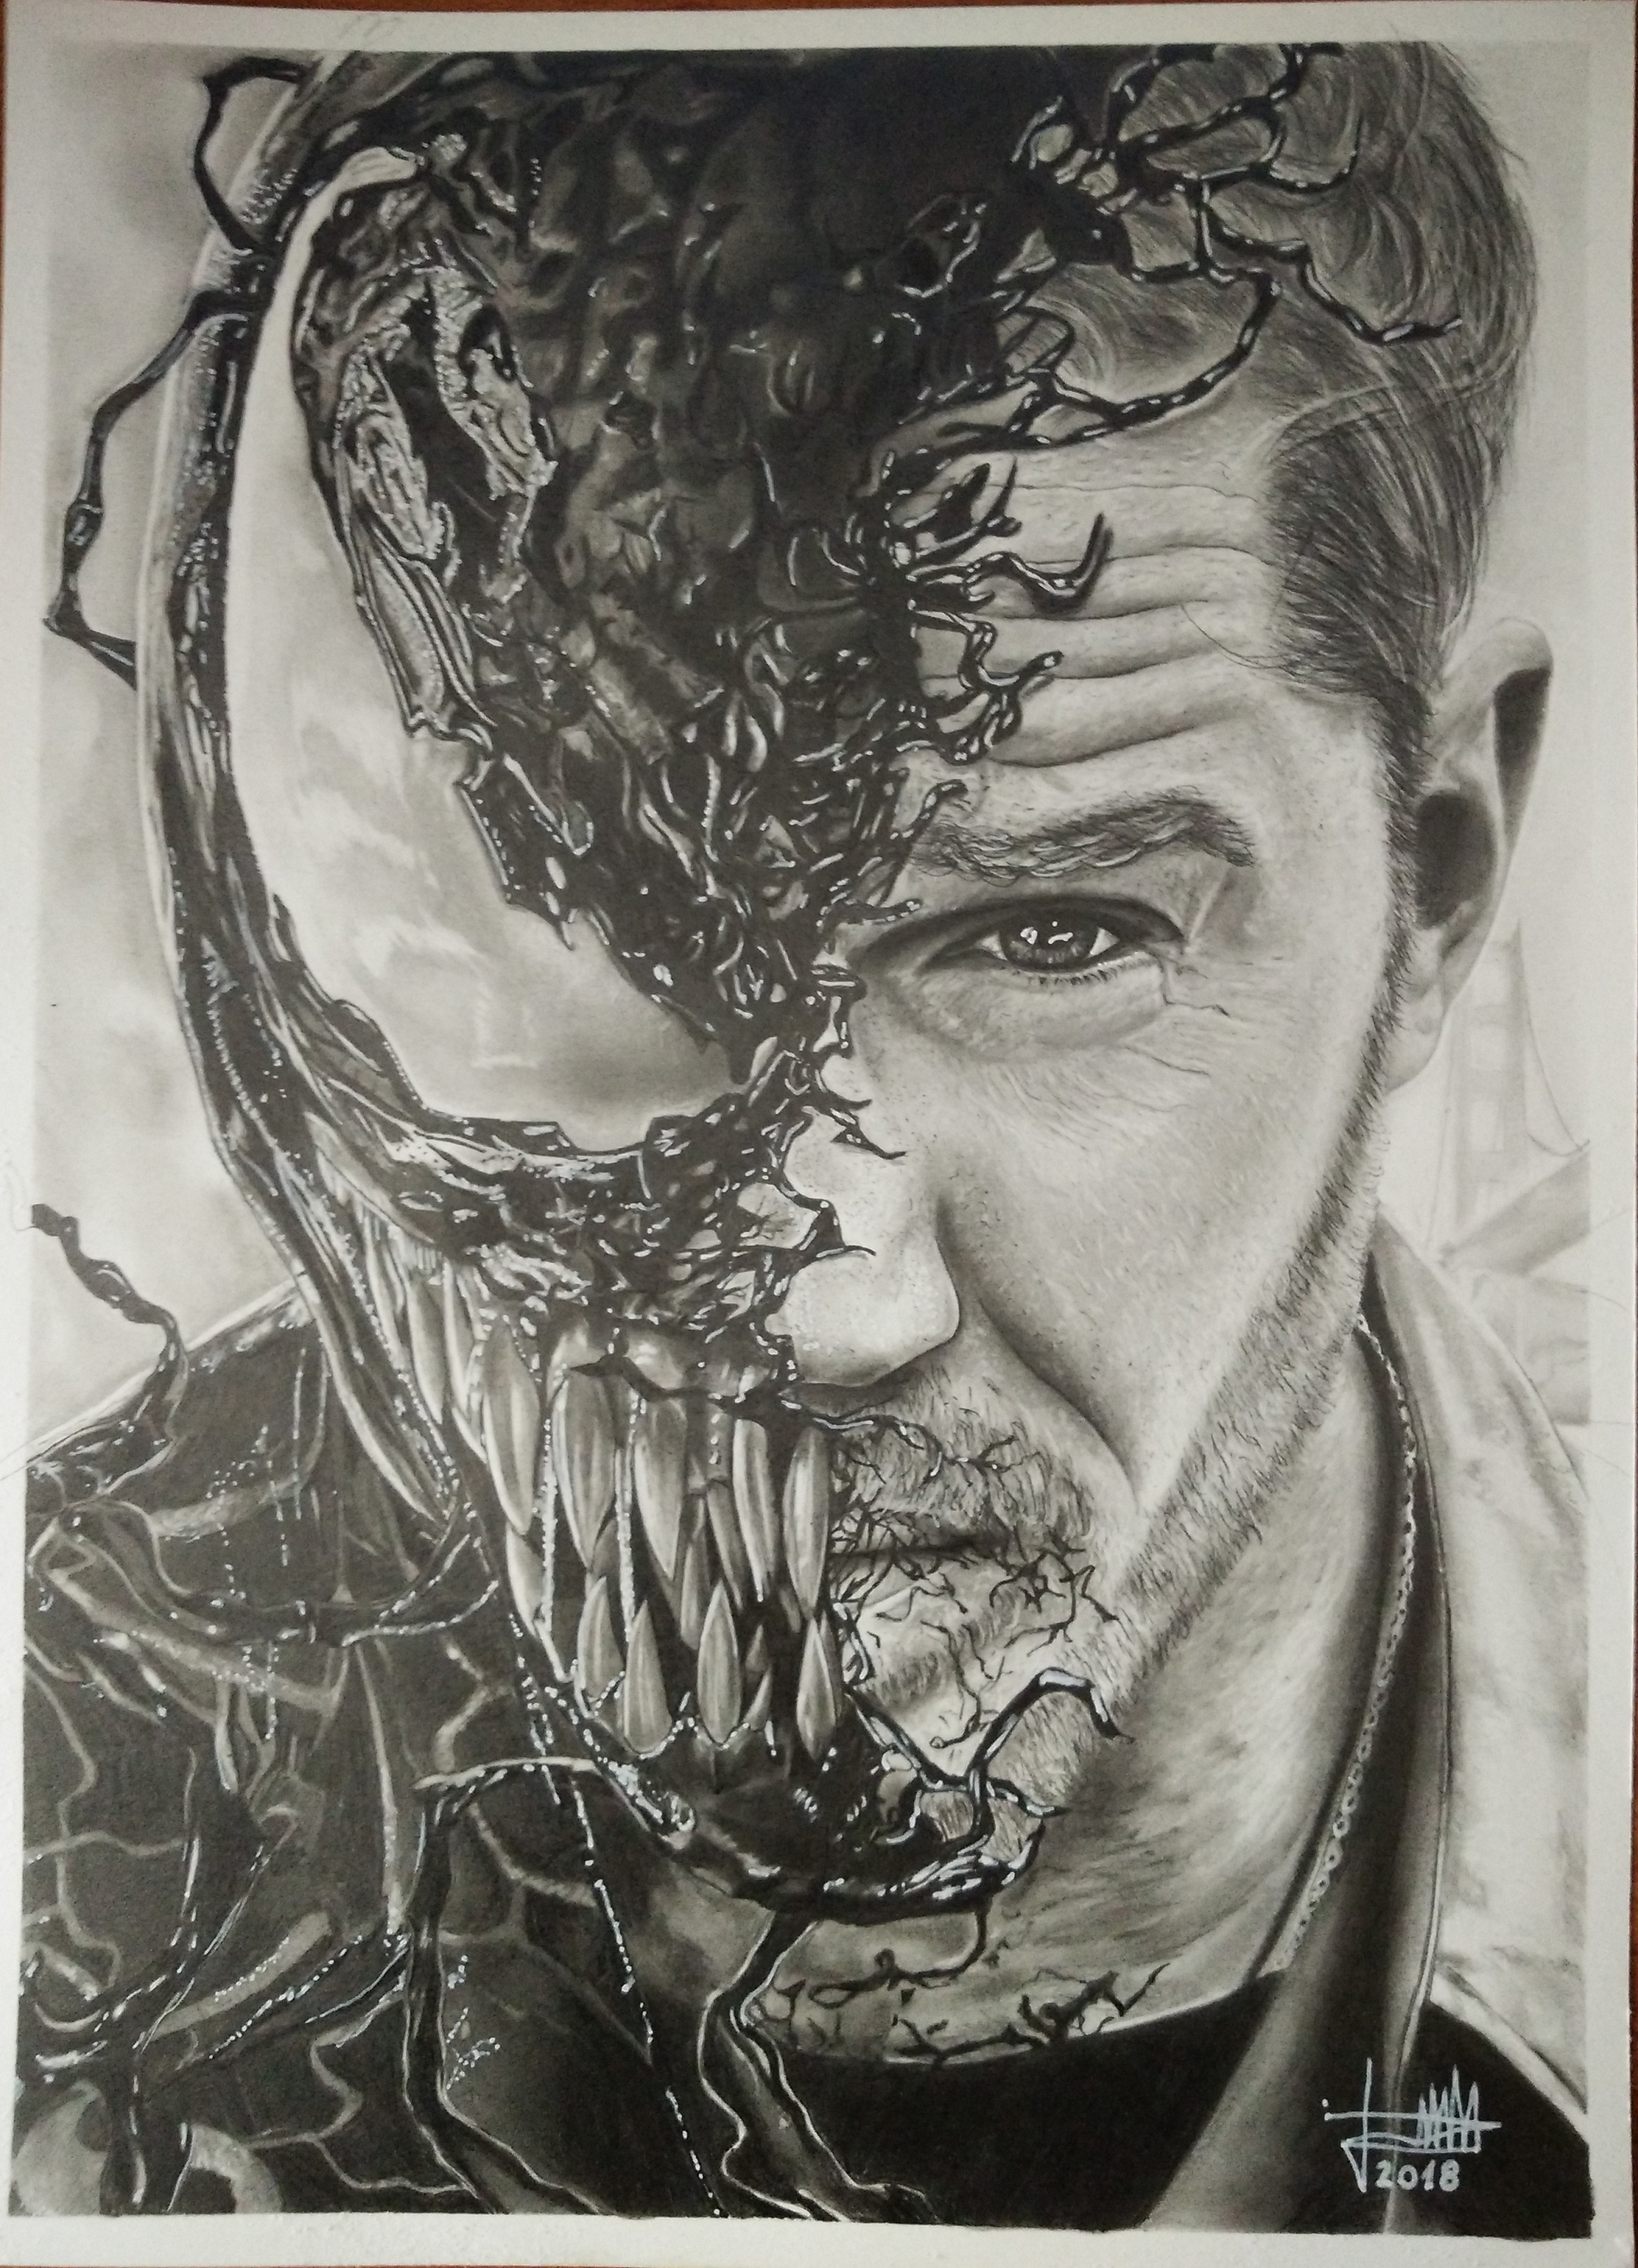 Venom - Drawing made in pencil and charcoal